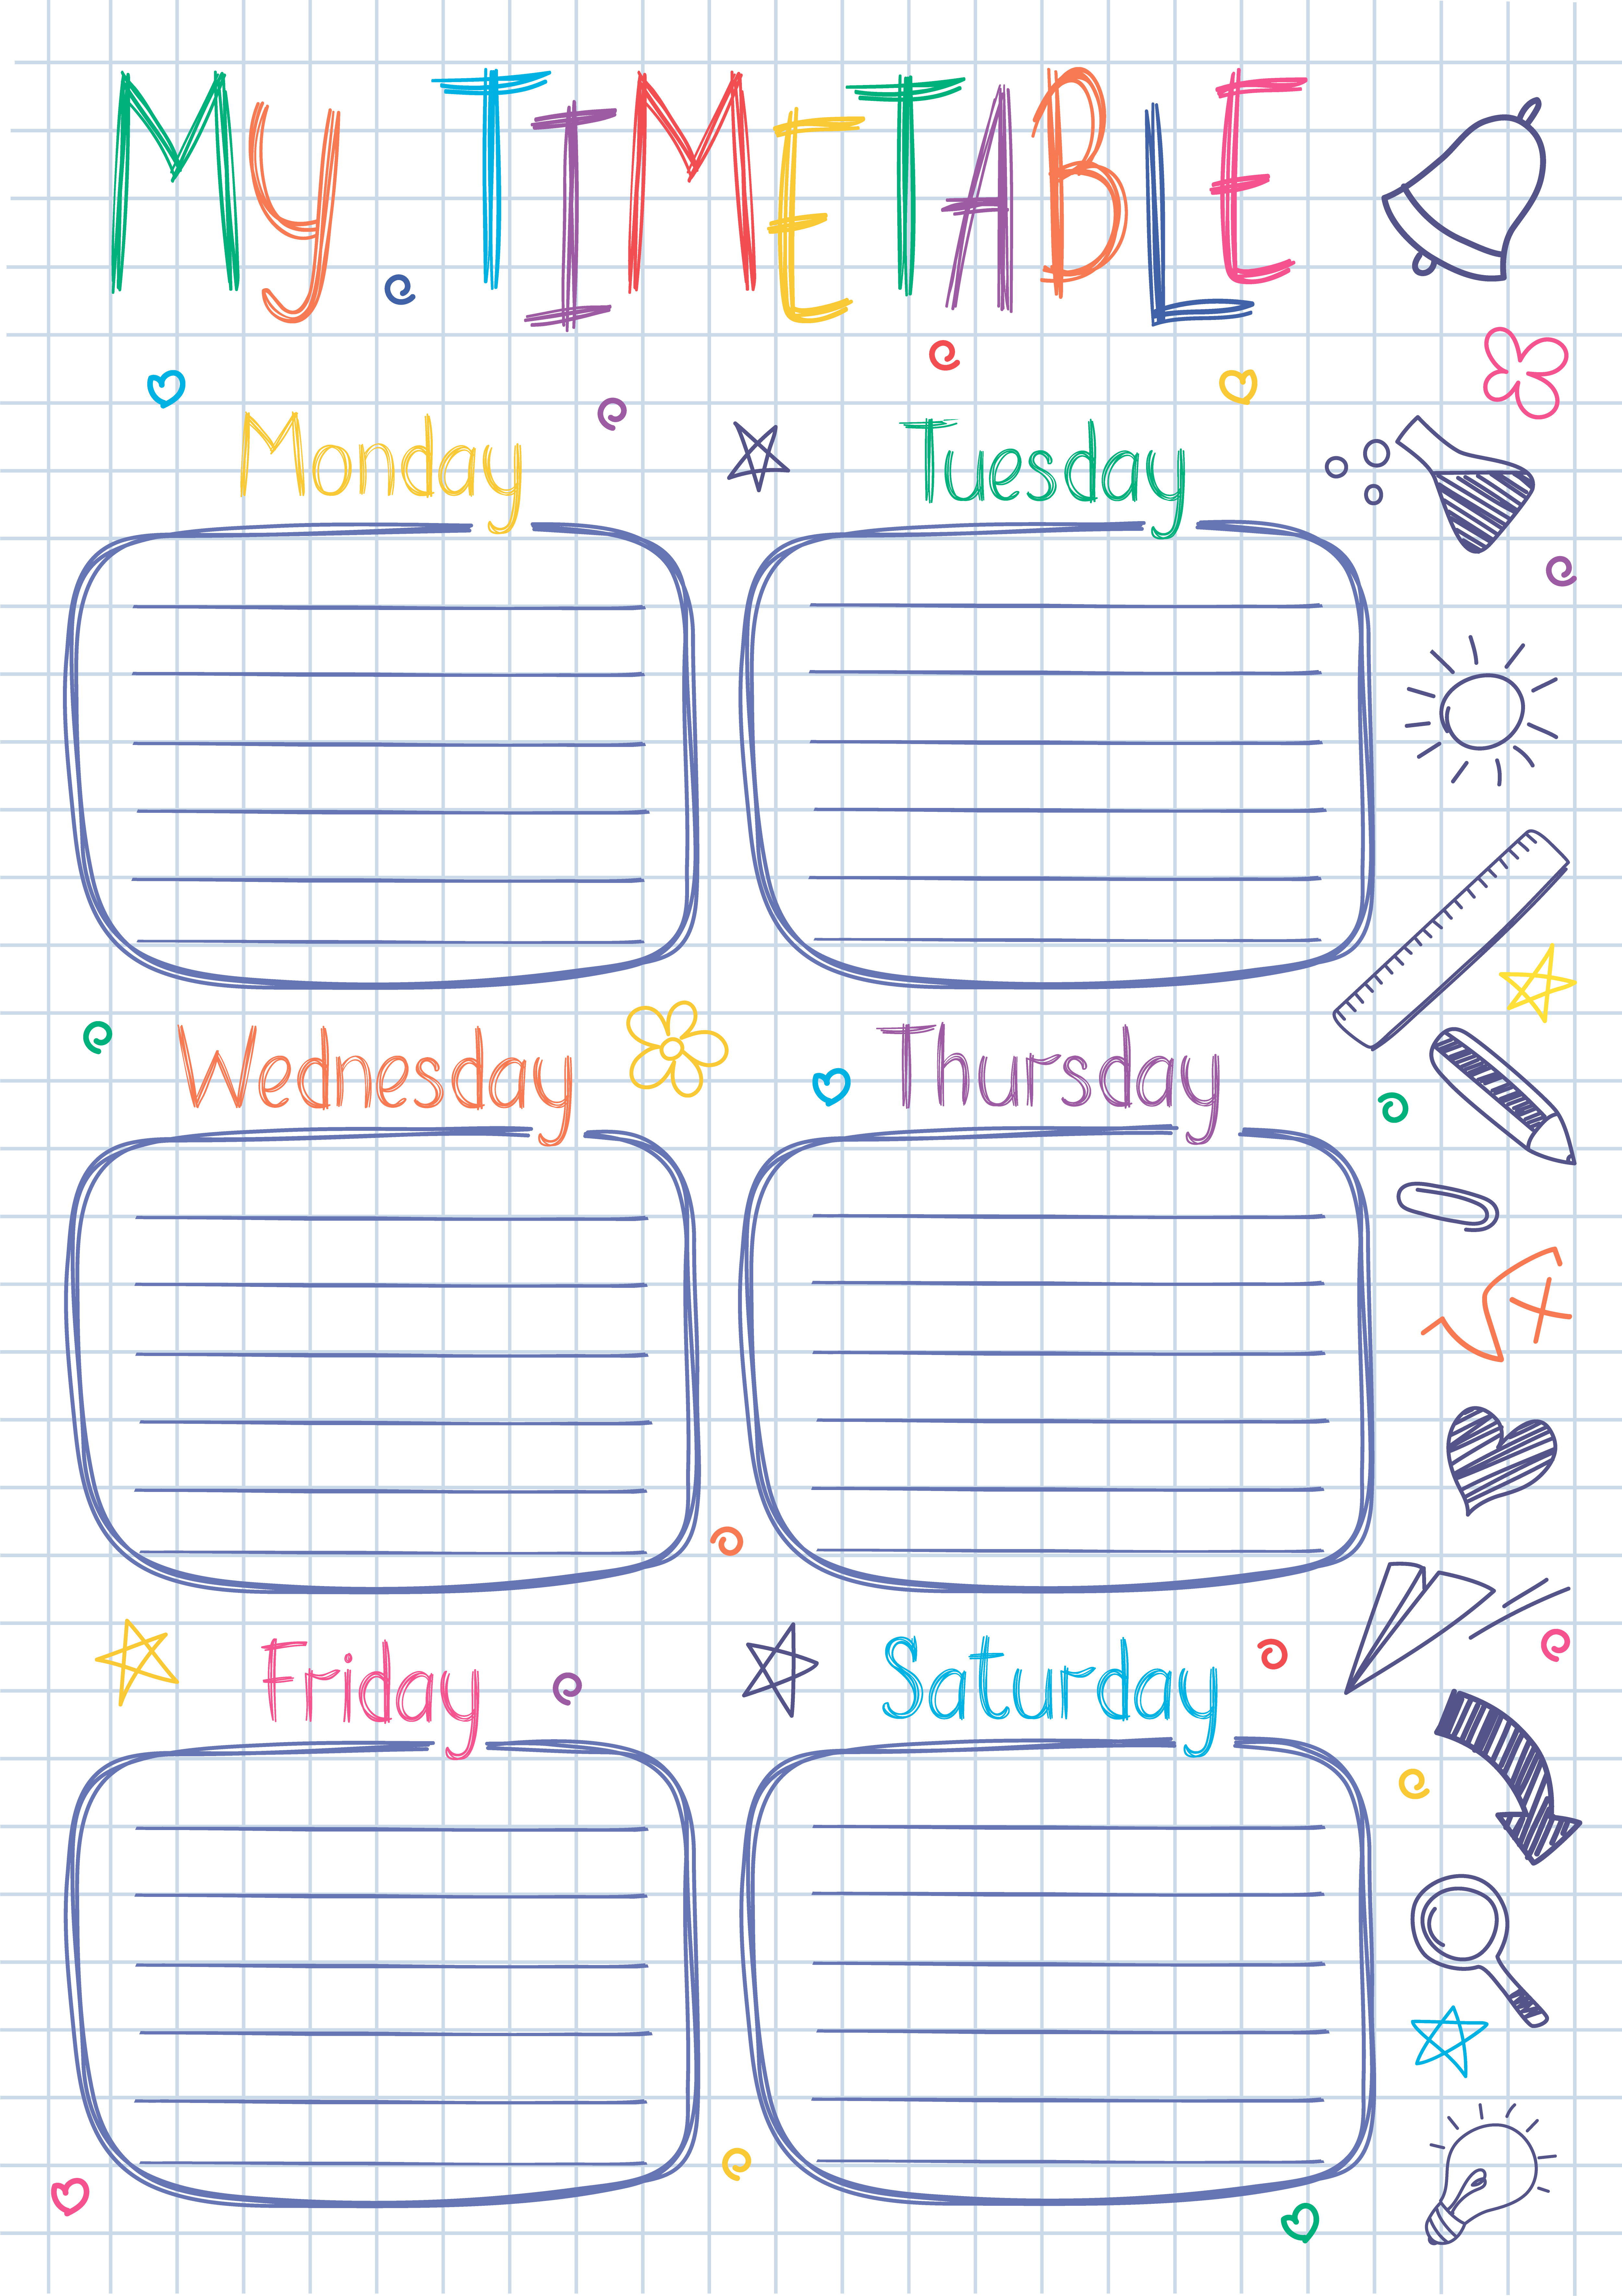 school timetable template on copy book sheet with hand